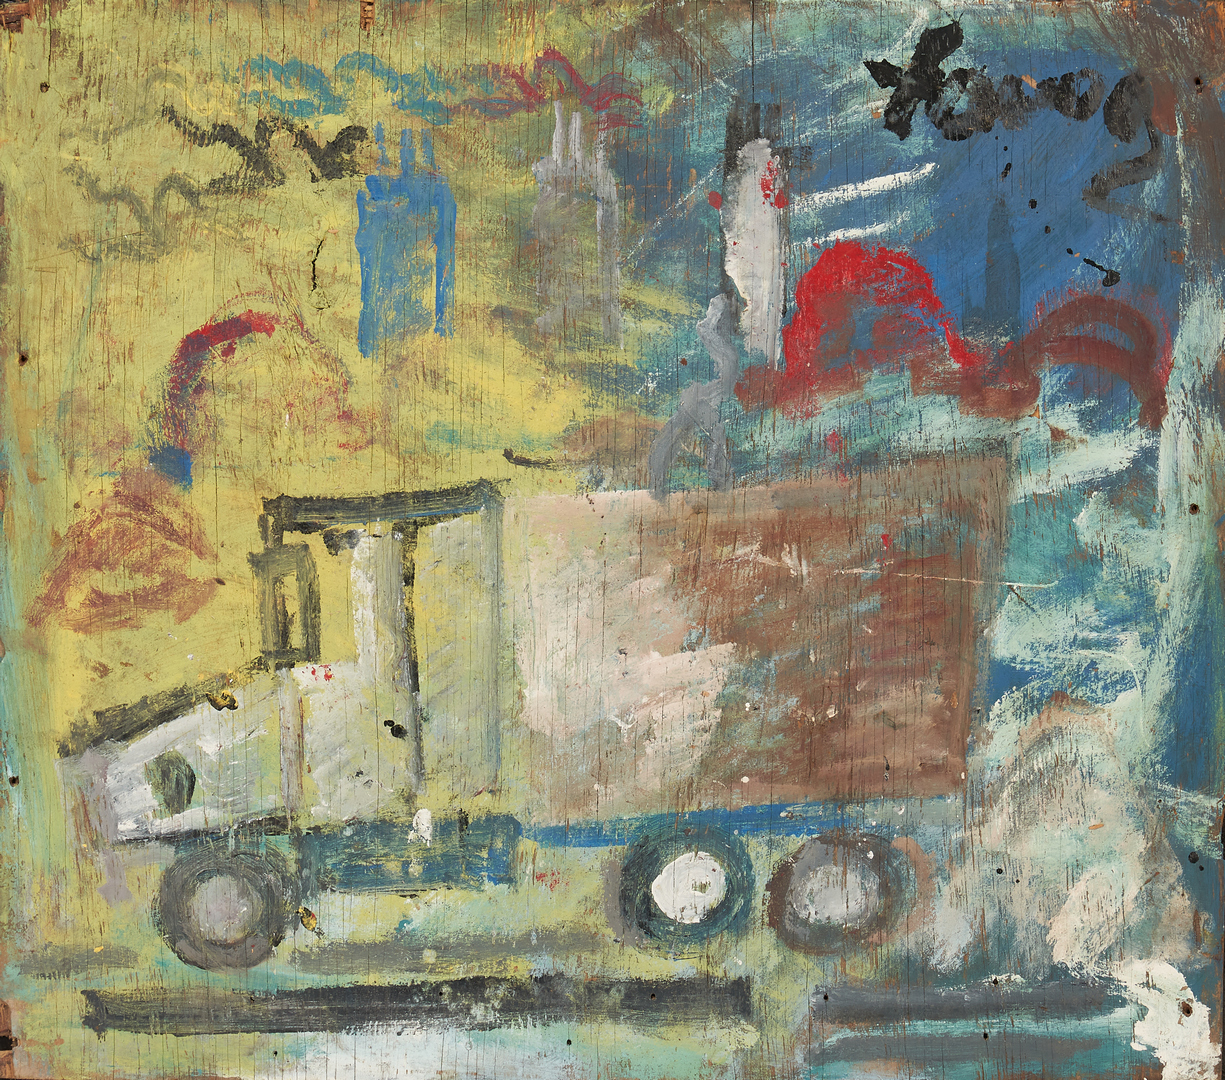 Lot 168: Purvis Young Outsider Art Painting, Semi Truck